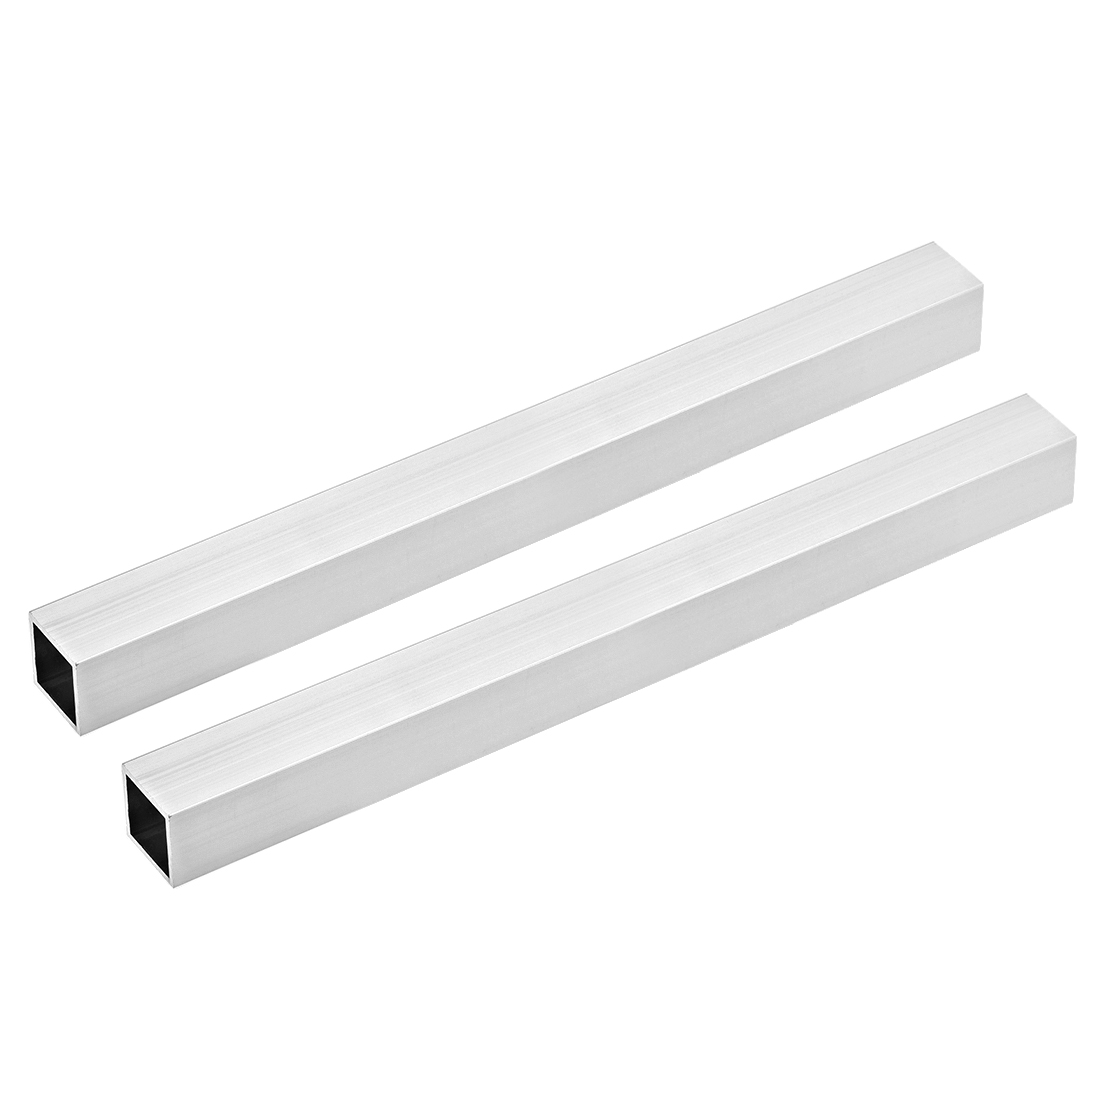 6063 Aluminum Square Tube 25mmx25mmx2mm Wall Thickness 300mm Length Tubing 2 Pcs